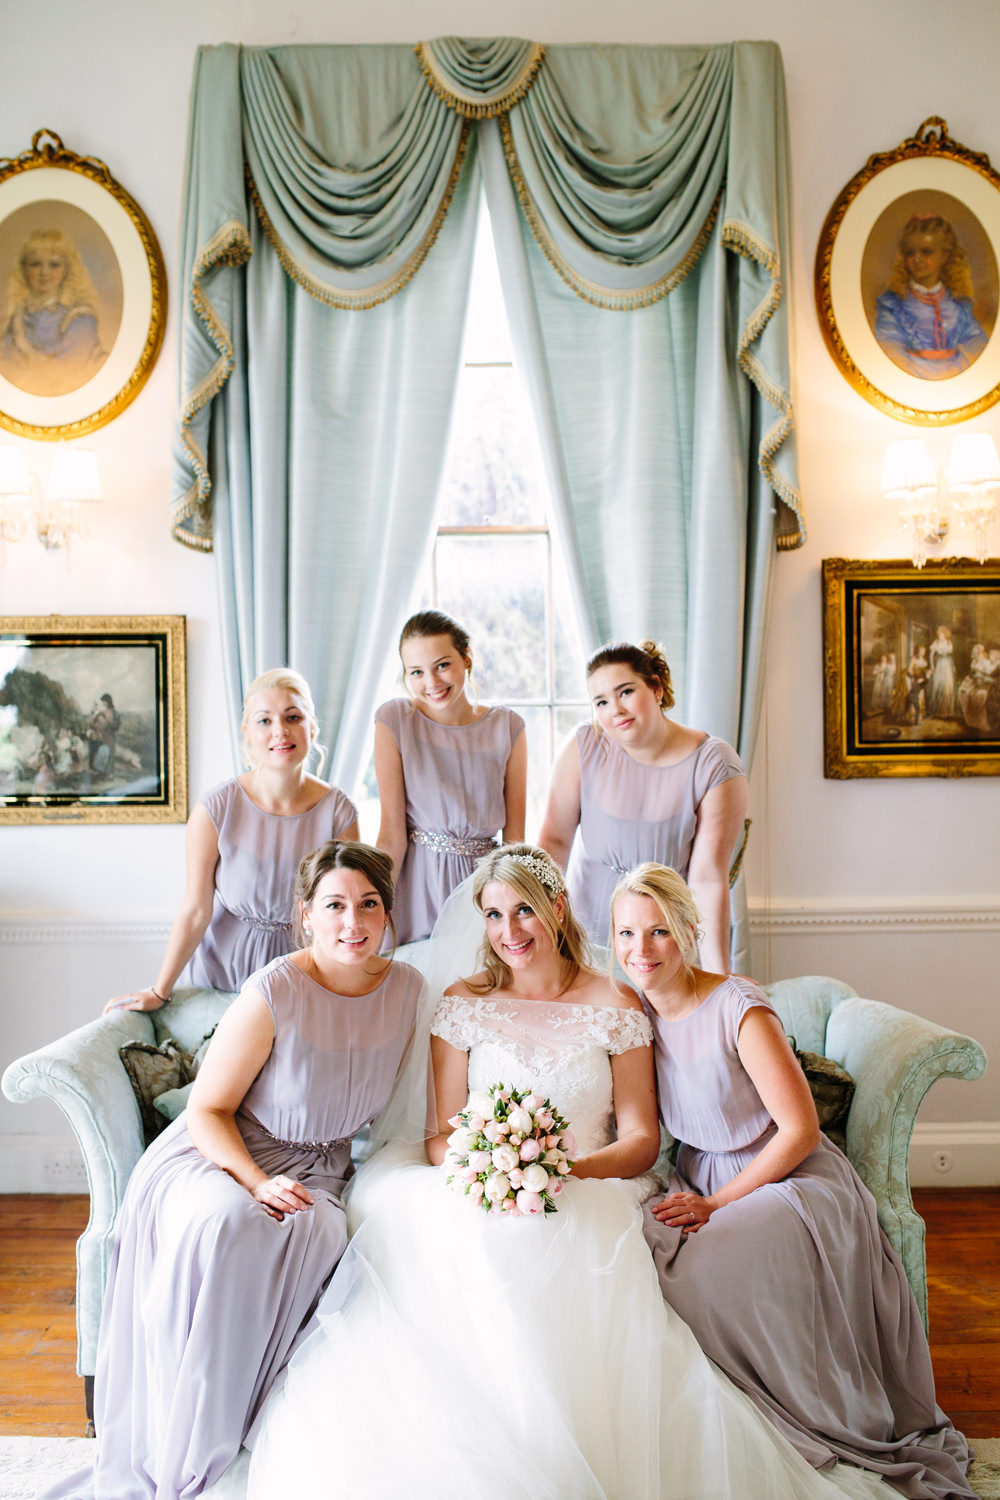 Pronovias leonela wedding gown coast bridesmaid dresses with image by a hrefhttphayleysavagephotography ombrellifo Images